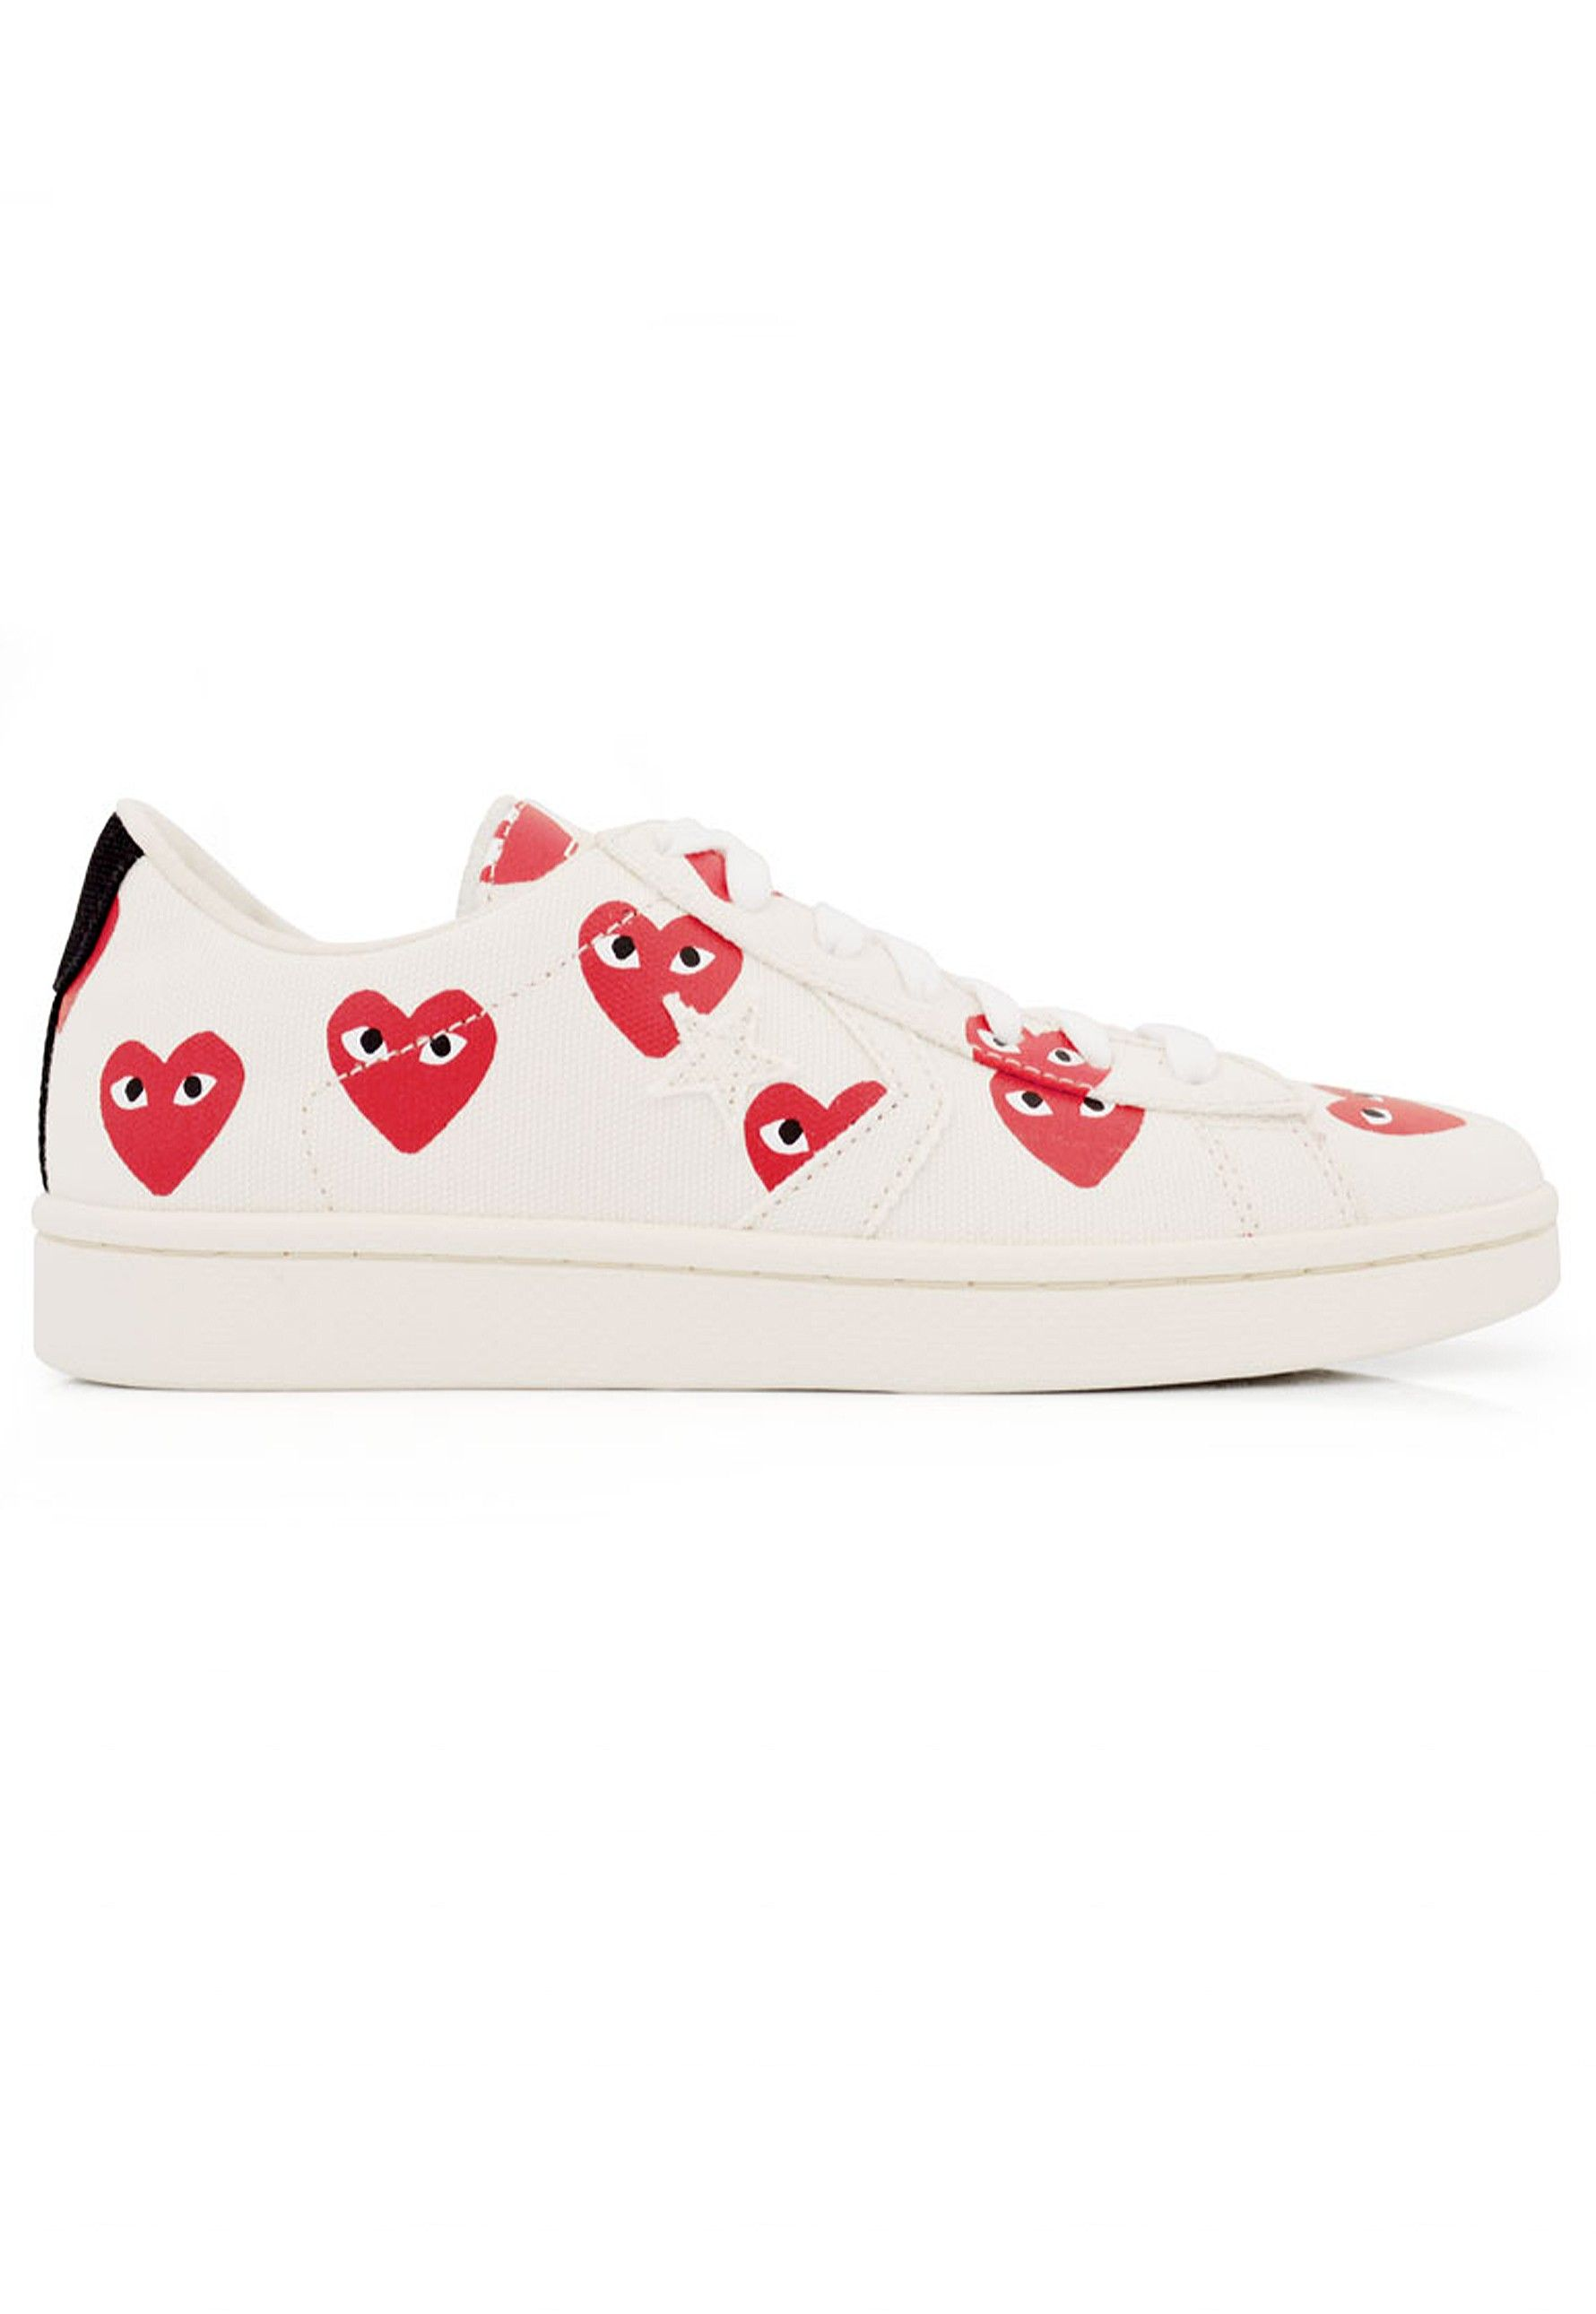 274cfe30b8a8a4 Comme Des Garcons PLAY x Converse Pro Leather Low Top in Cream. Comme des  Garcons PLAY collaborate with footwear masters Converse and create this low  top ...